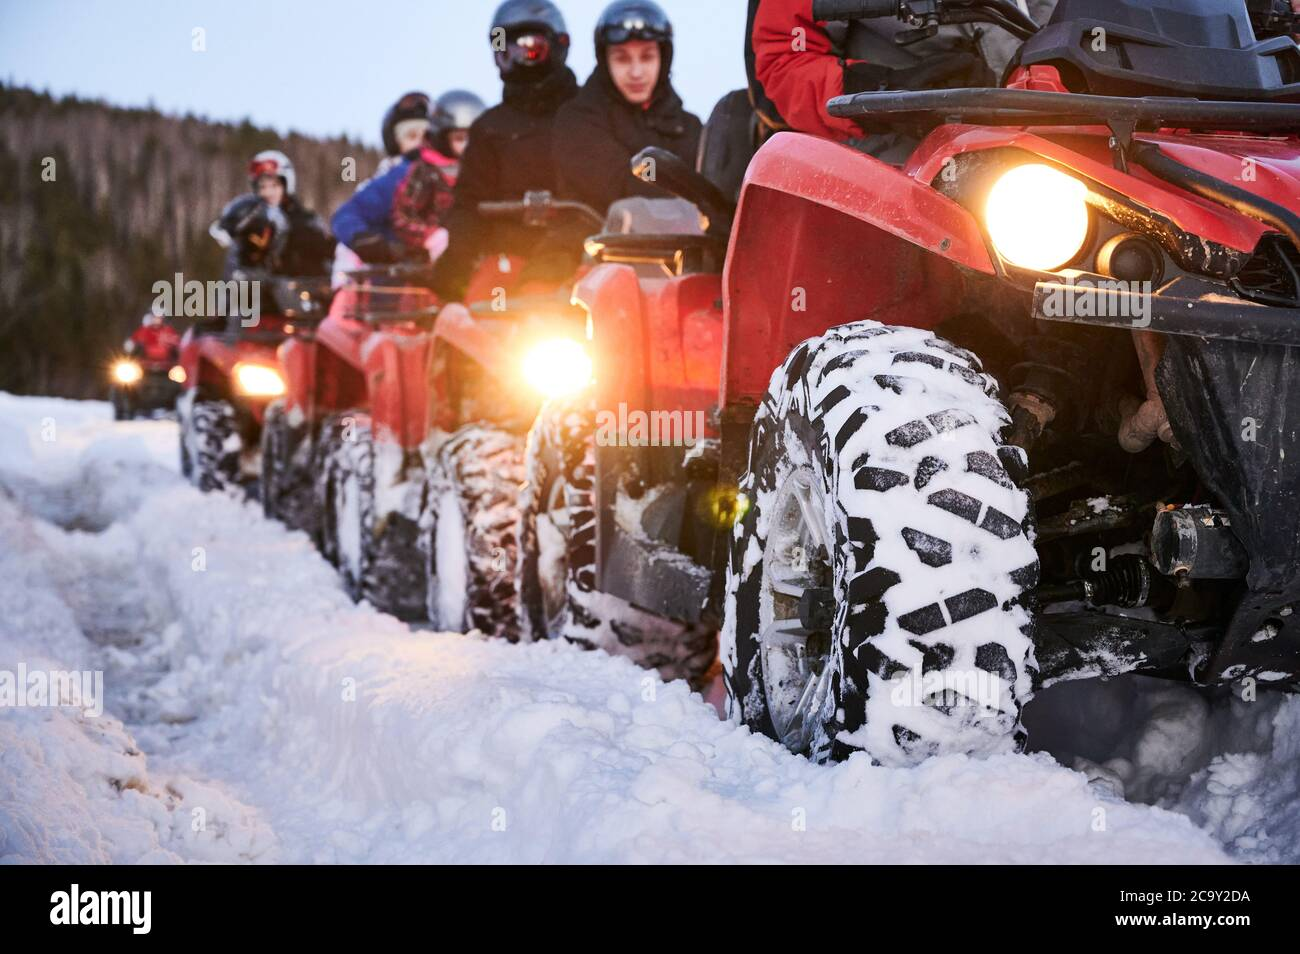 Focus on the wheel. People riding red all-terrain vehicles down snowy hill. Quad riders driving quad bikes with black snowy wheels on snow-covered trail. Concept of winter activities and quad biking. Stock Photo